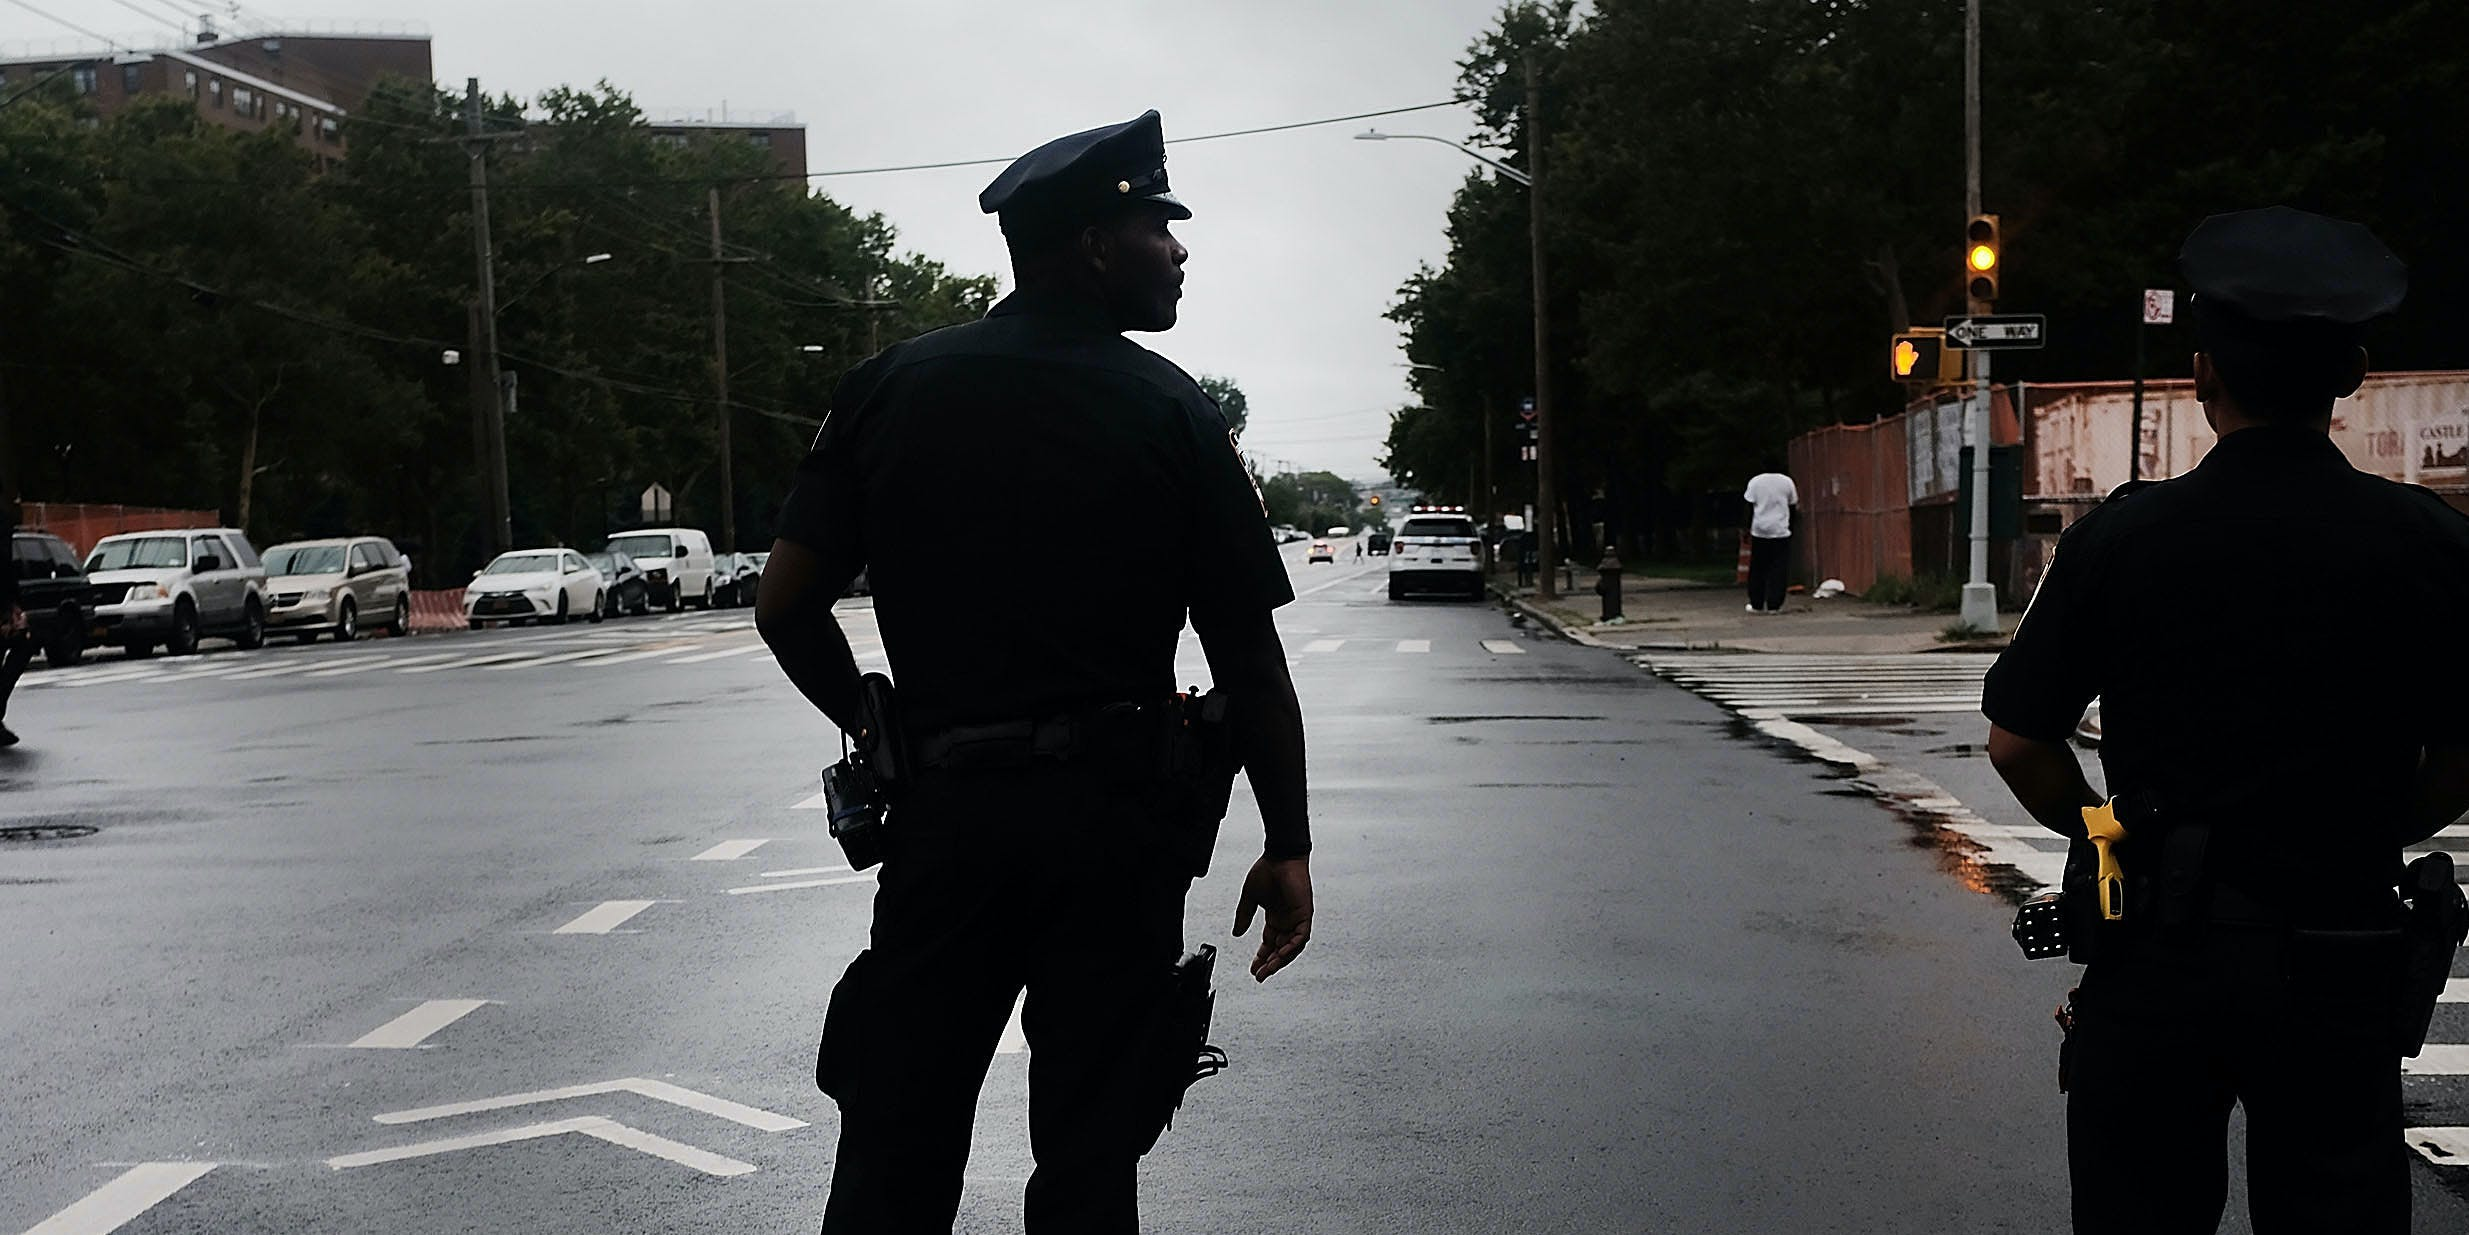 A police officer stands on patrol as people participate in a Silent Peace March against Violence in the Bronx on July 25, 2018 in New York City. A recent study found cannabis legalization does not lead to an increase in felonies in Washington